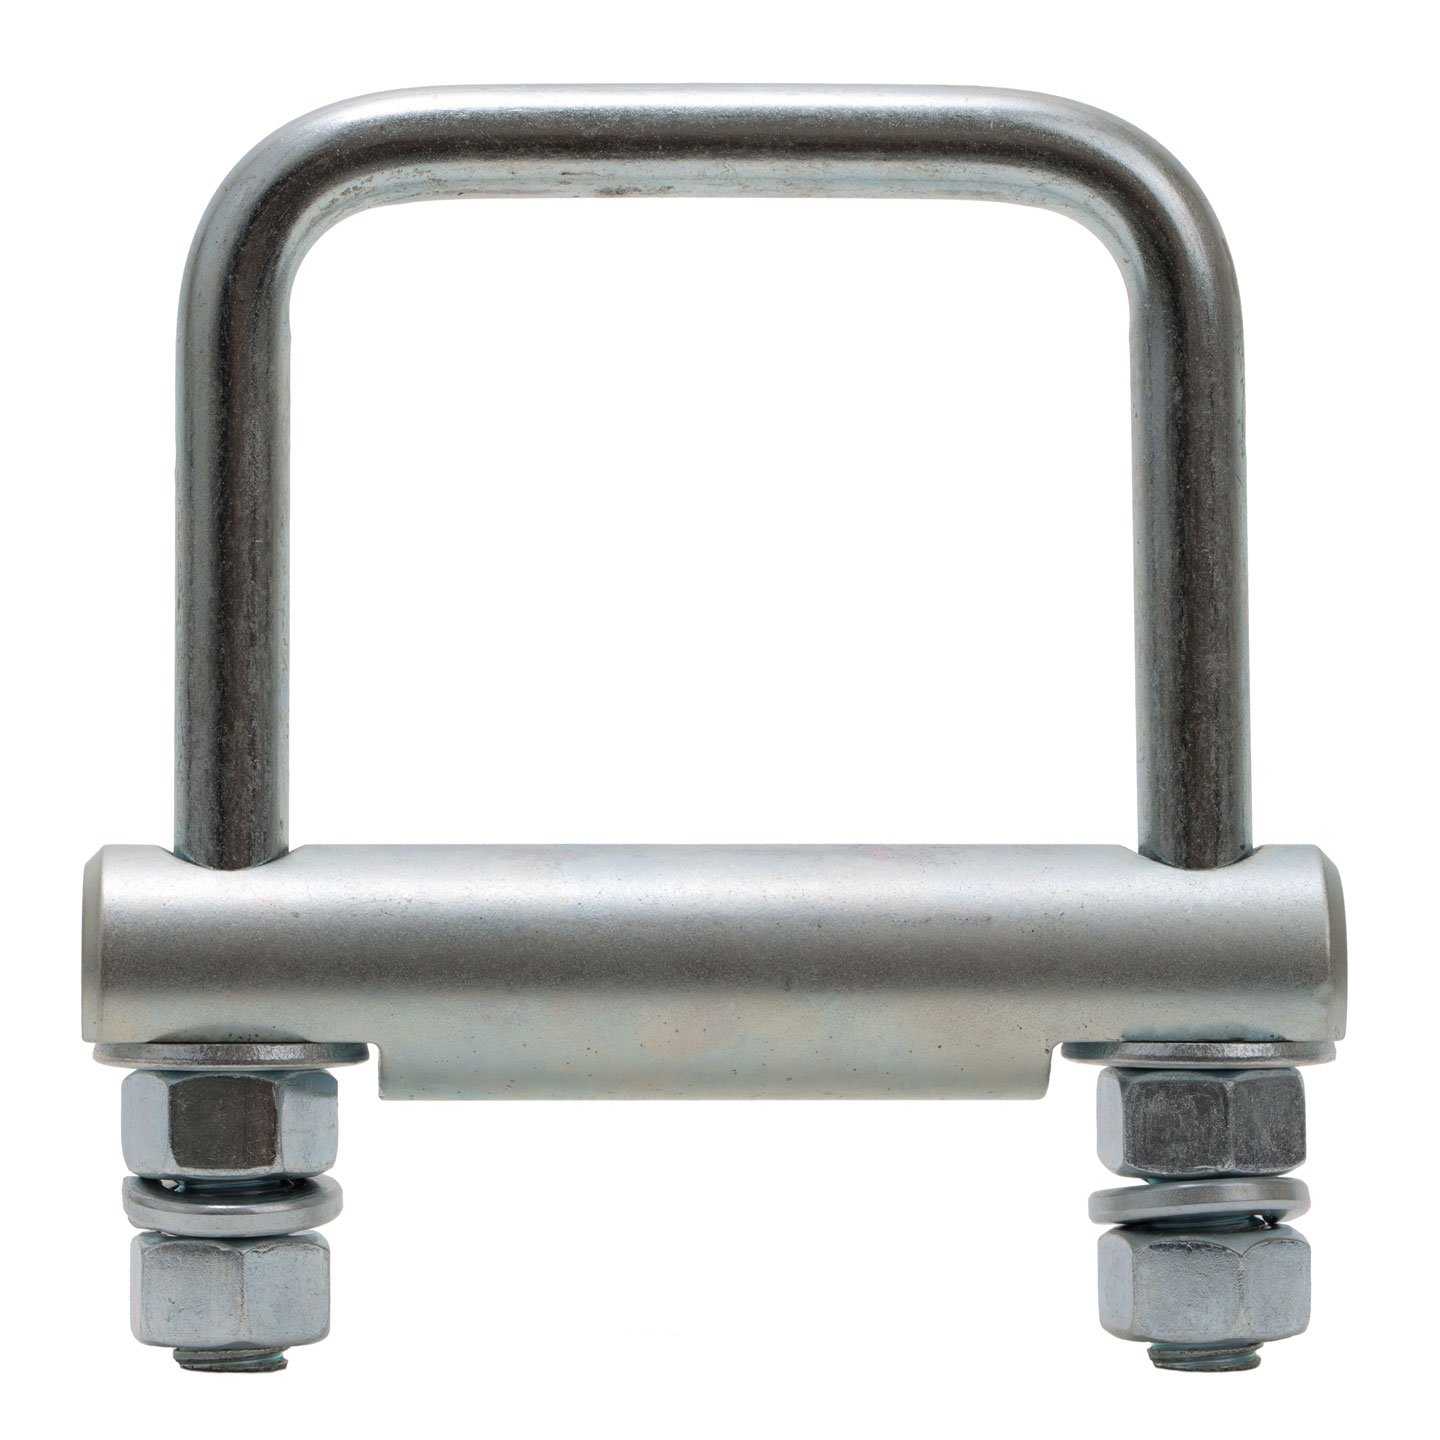 Stainless Steel Hitch Pin Eliminator- NO Rattle Cargo Racks,Trailer hitches,Keeps Everything Secure NO sway Ideal for Bike Racks